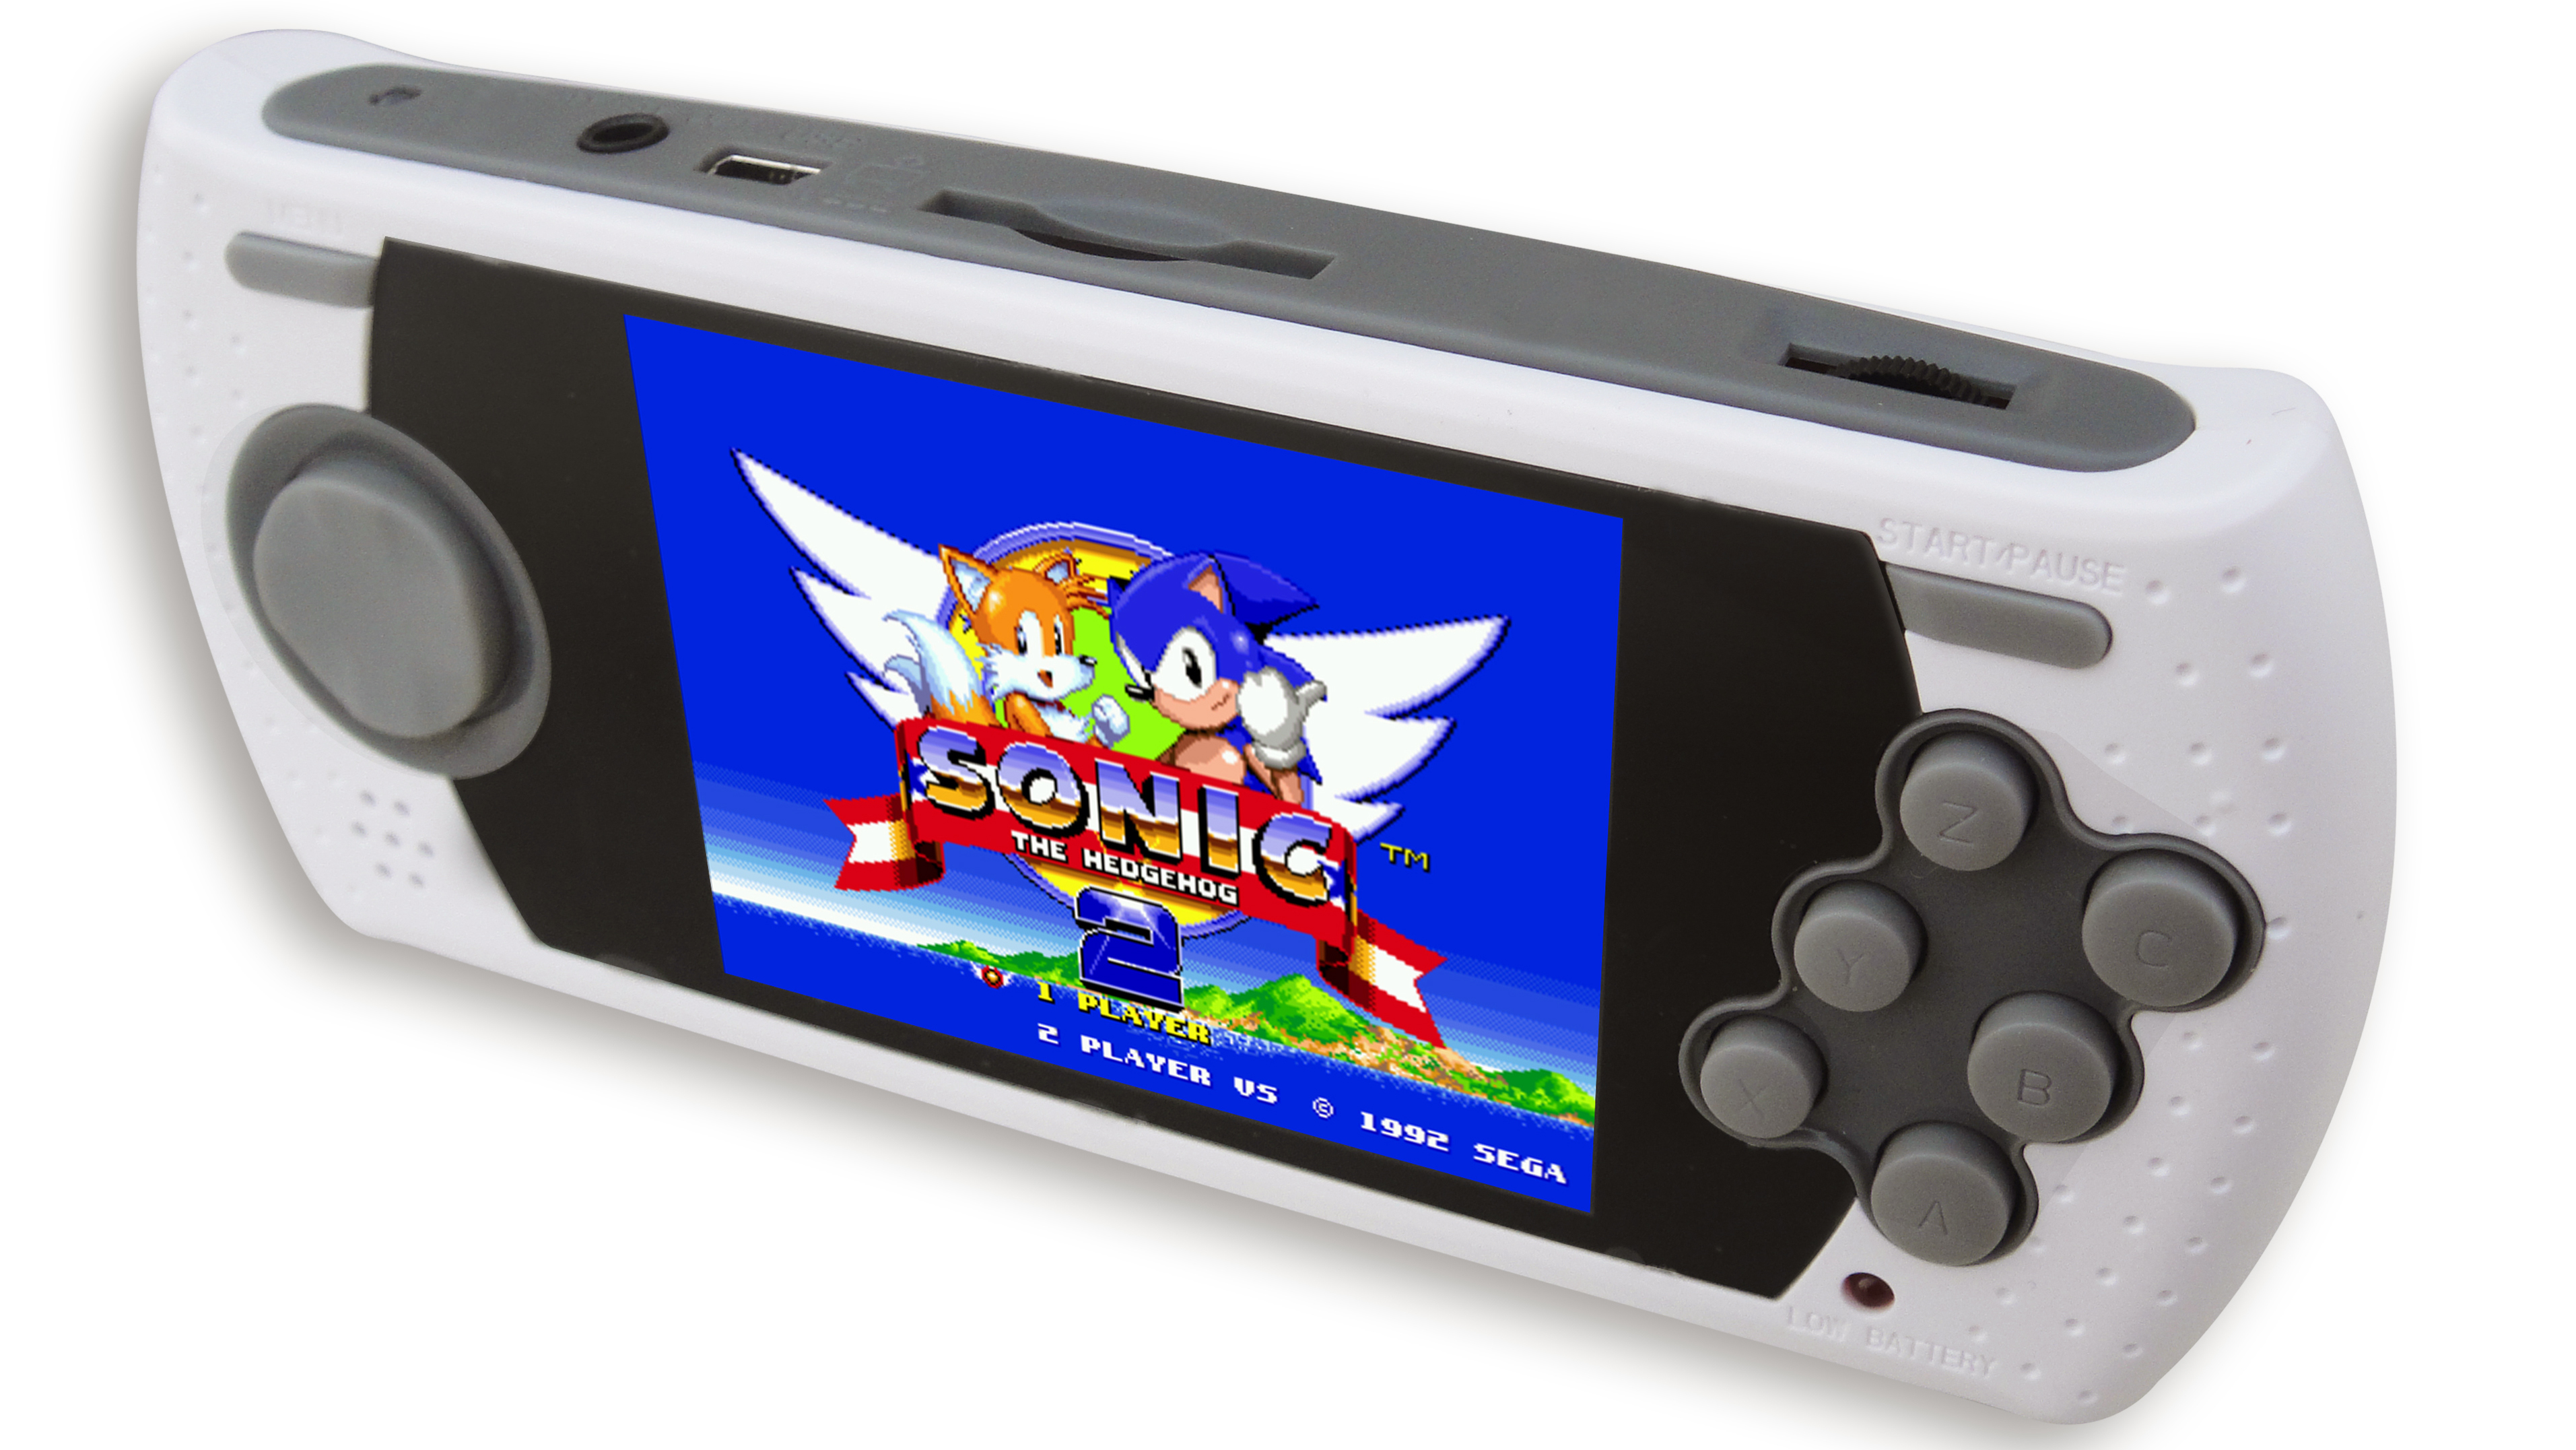 Review sega genesis ultimate portable game player for Ptable games